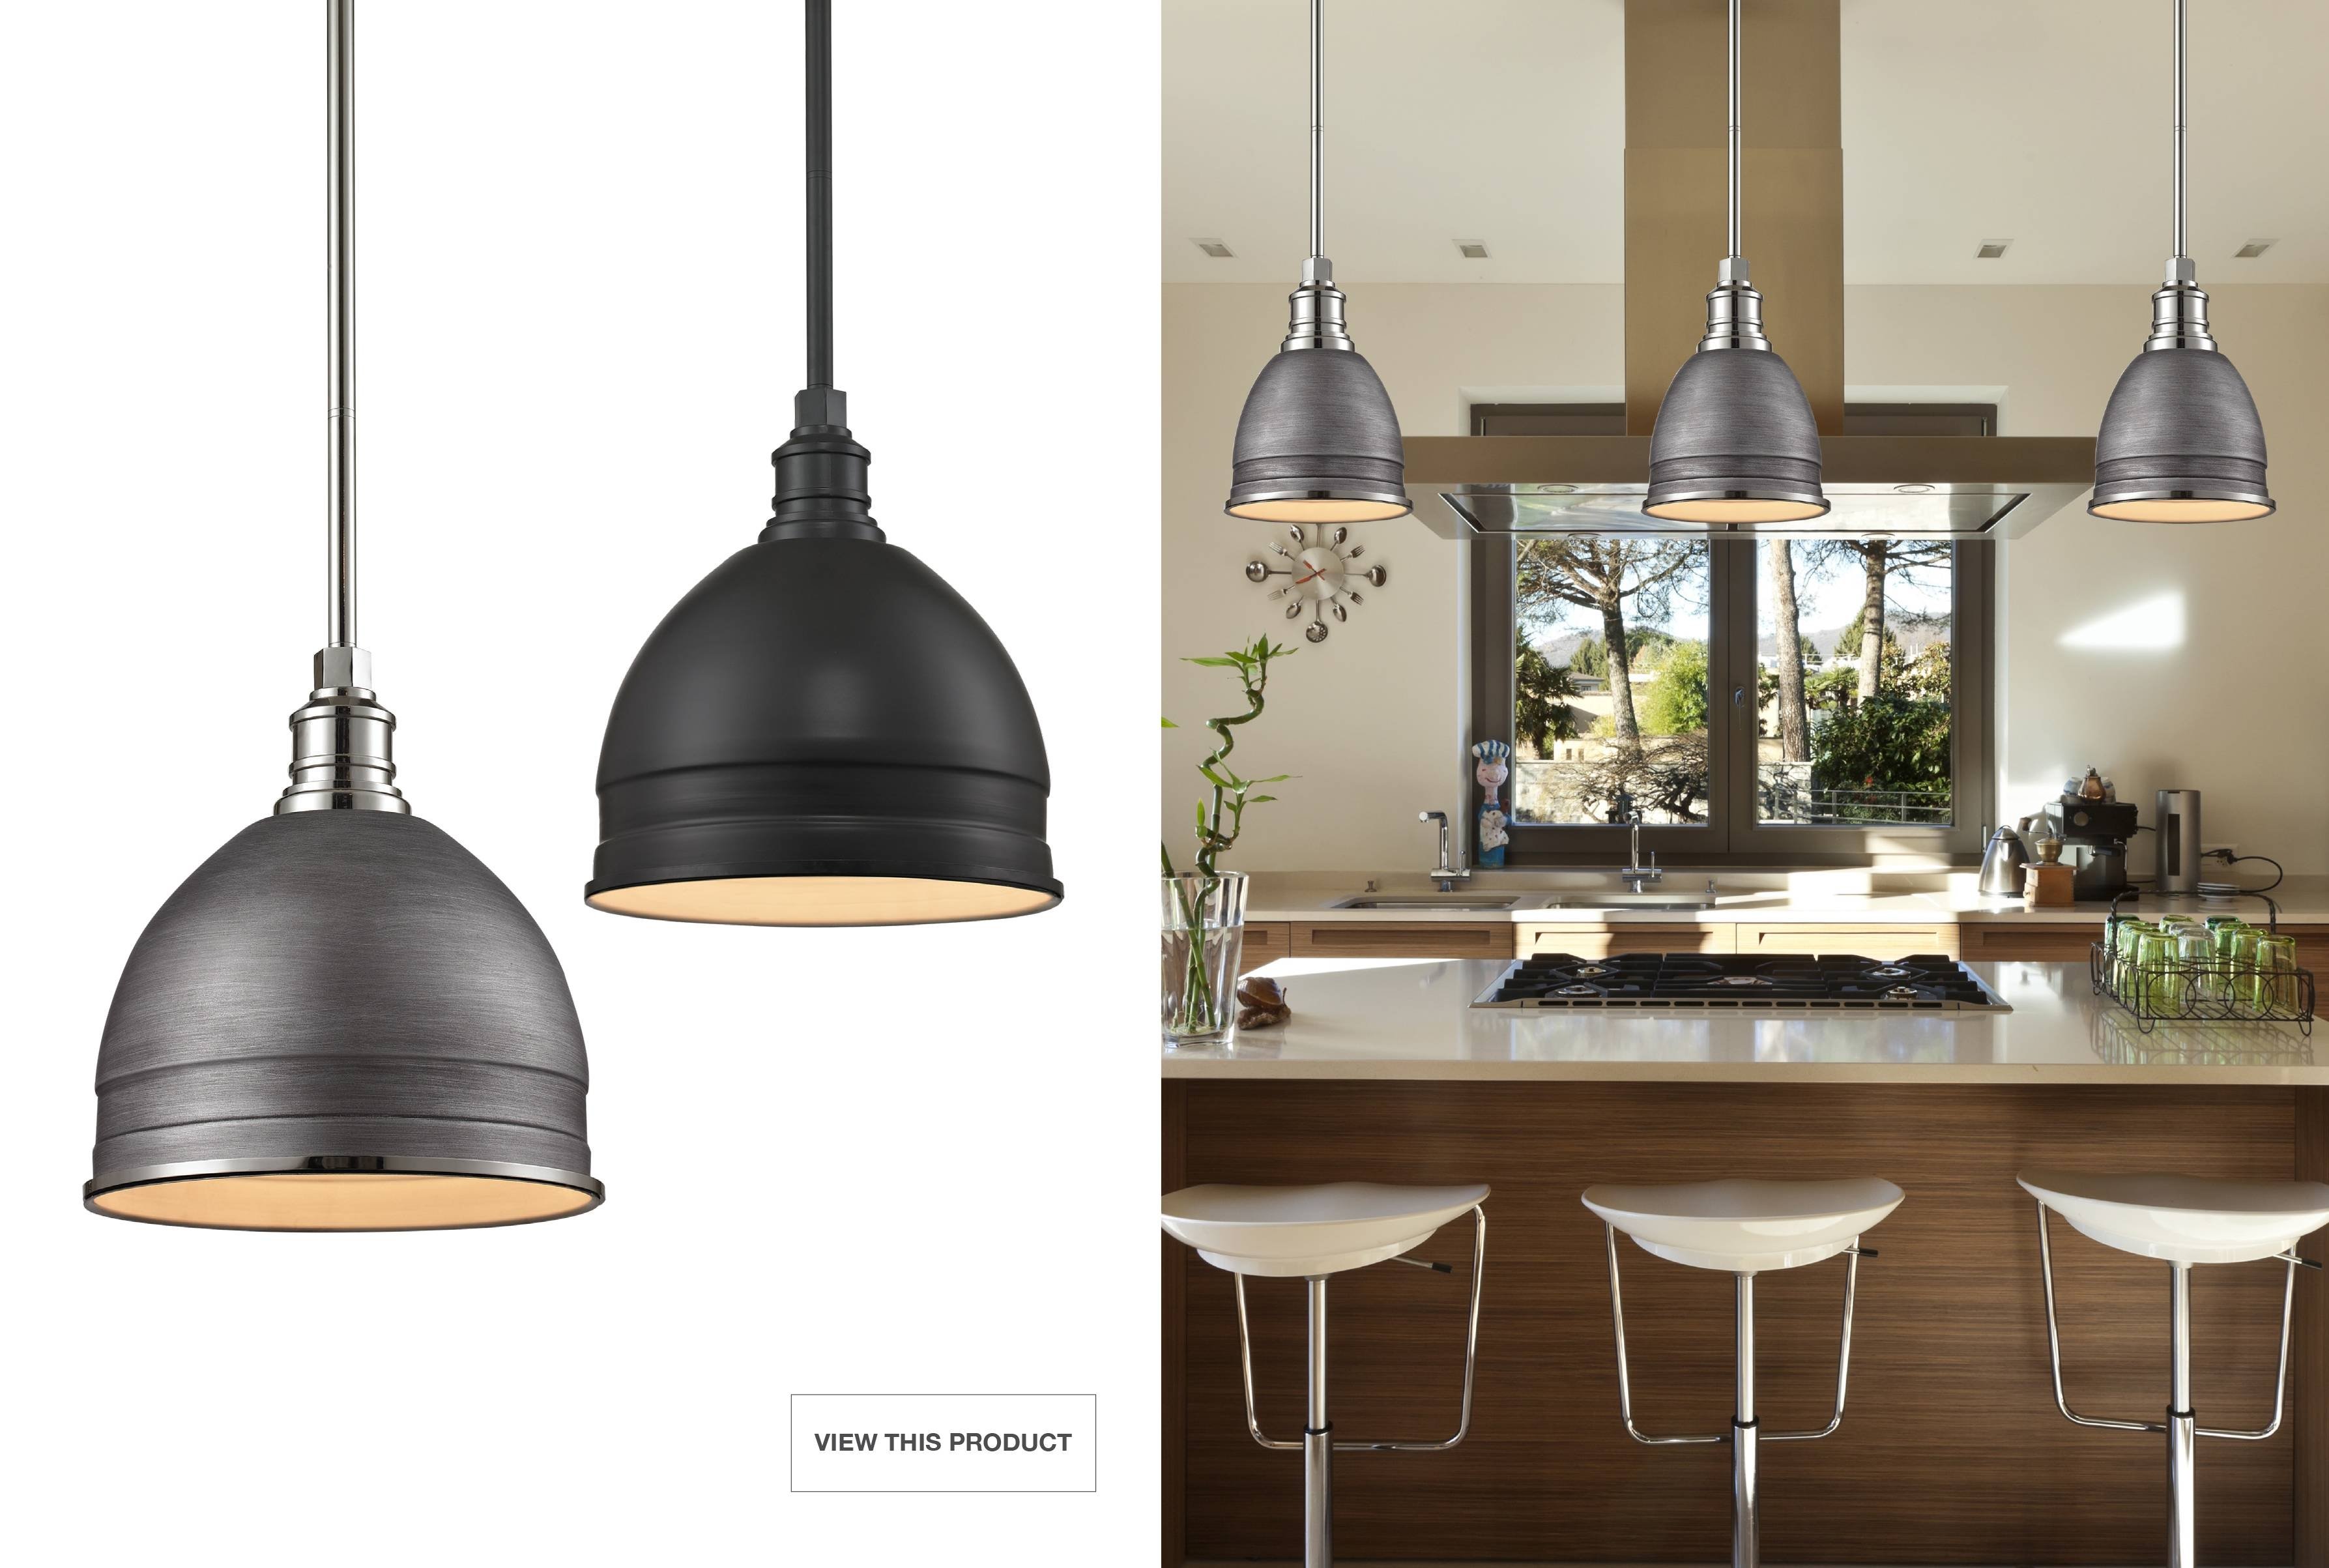 Kitchen Design Ideas: Originaltobi Fairley Industrial Kitchen For Industrial Pendant Lights Fittings (View 9 of 15)